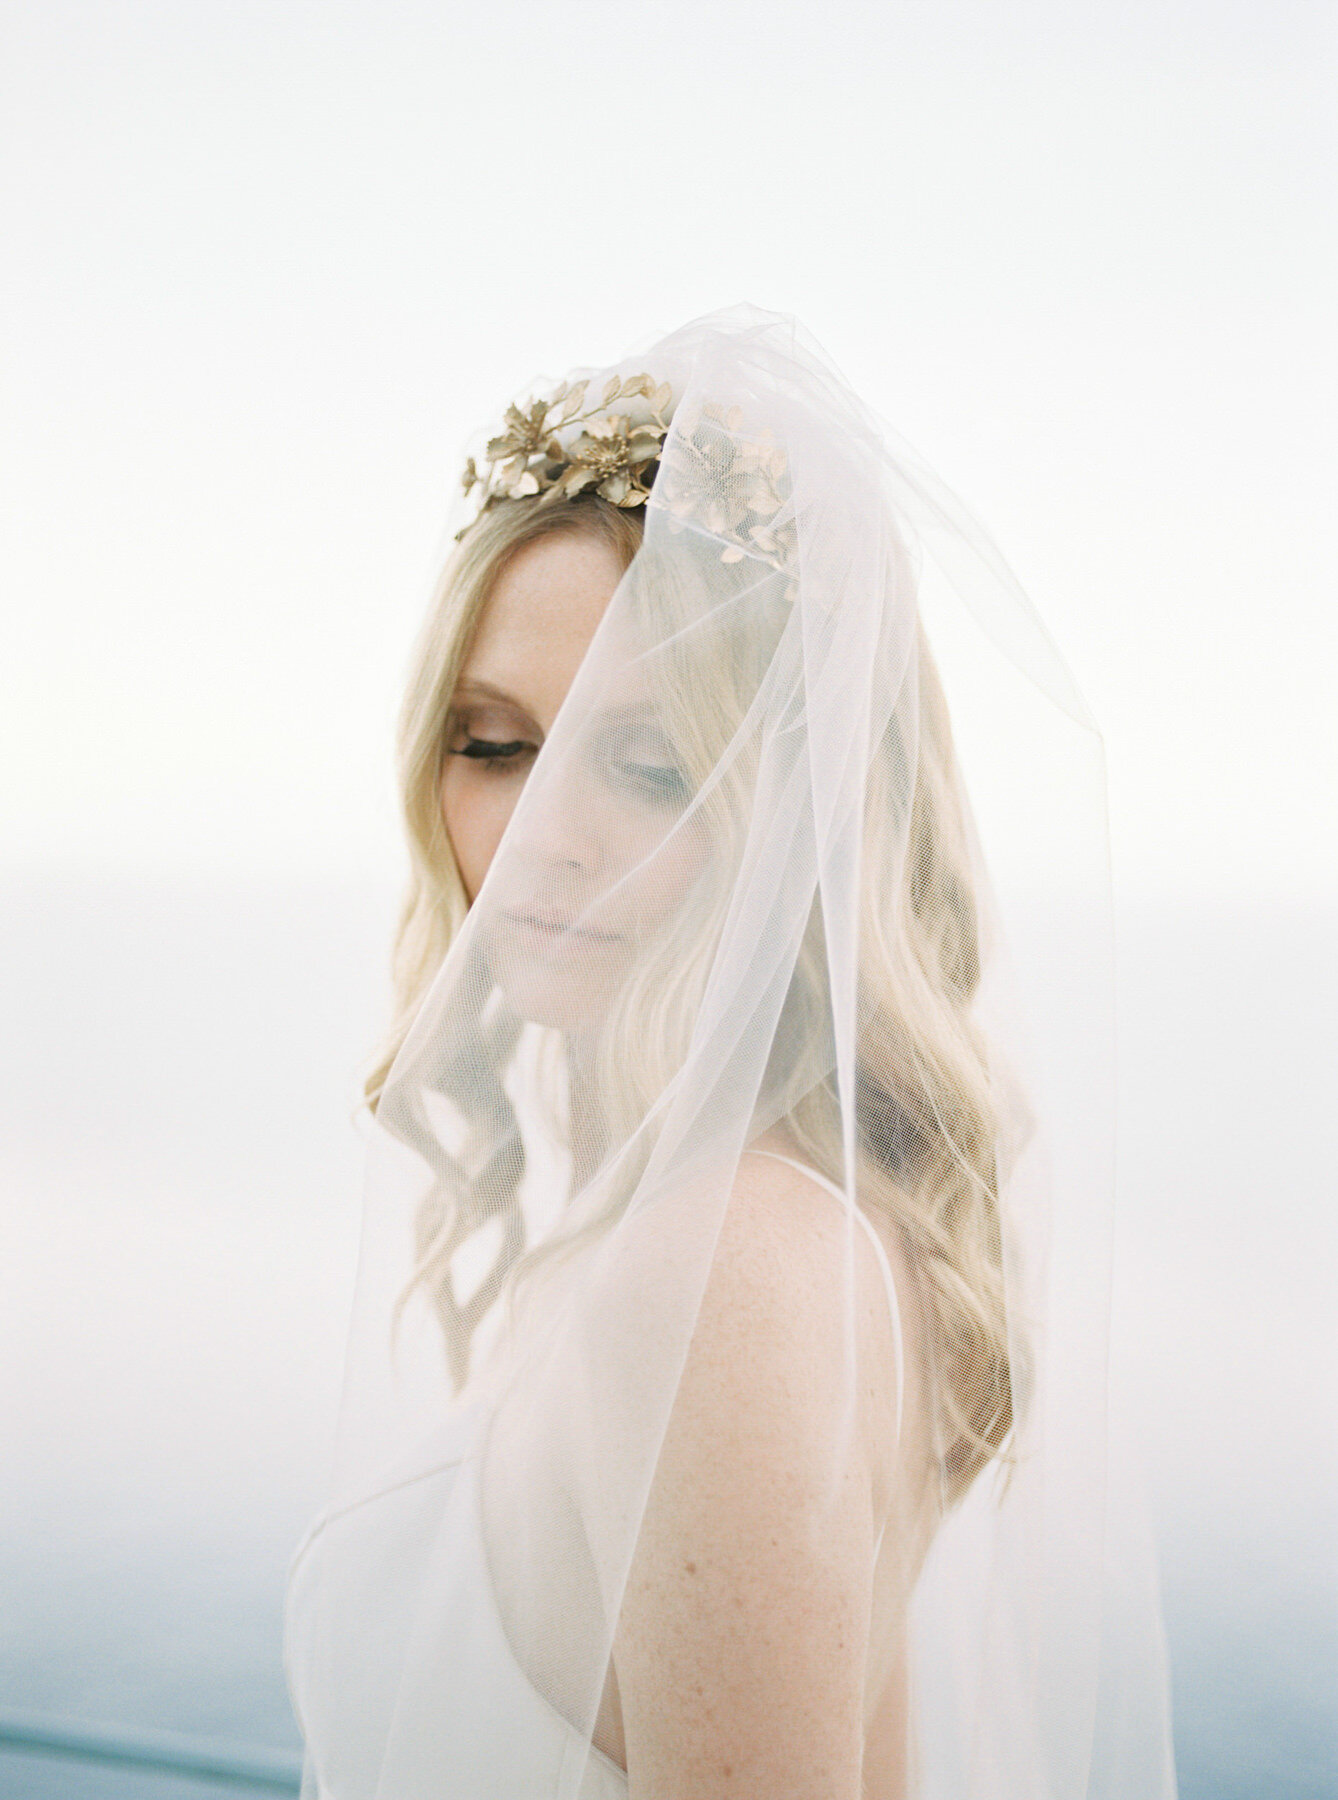 Amalfi Coast Italy Fine Art Wedding by Photographer CHYMO & MORE